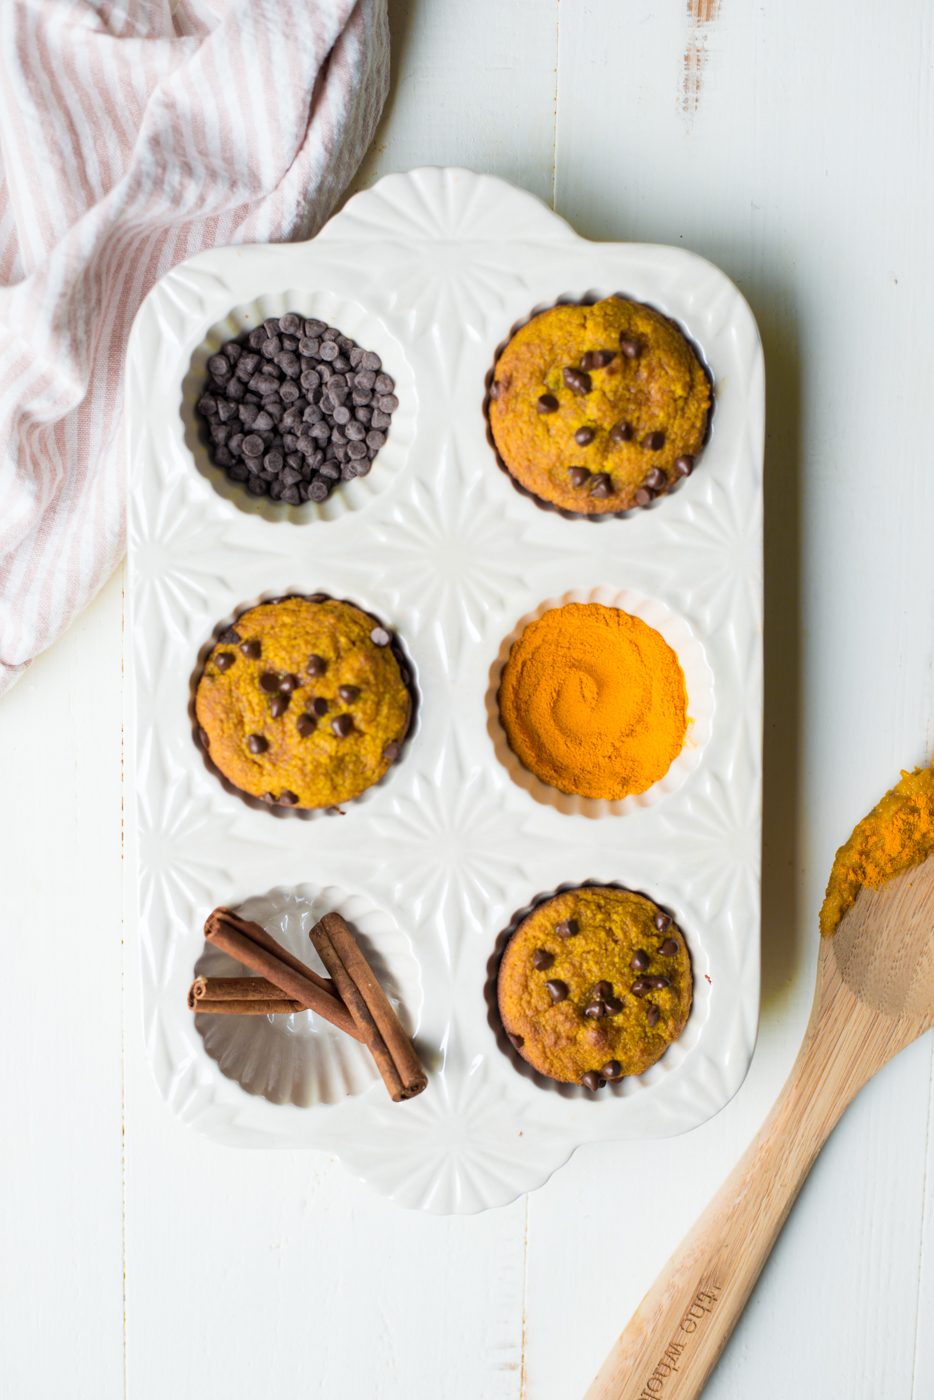 One-Bowl Golden Glow Turmeric Flourless Muffins are packed with nourishing ingredients, like anti-inflammatory turmeric, and make a naturally sweet and healthy breakfast or snack anytime! Naturally gluten-free, dairy-free, grain-free and naturally sweetened. #realfoodwholelife #realfoodwholeliferecipe #glutenfree #dairyfree #paleo #glutenfreerecipe #paleorecipe #healthy #healthyrecipe #cleaneating #lowsugar #grainfree #turmeric #antiinflamatory #muffins #snack #breakfast